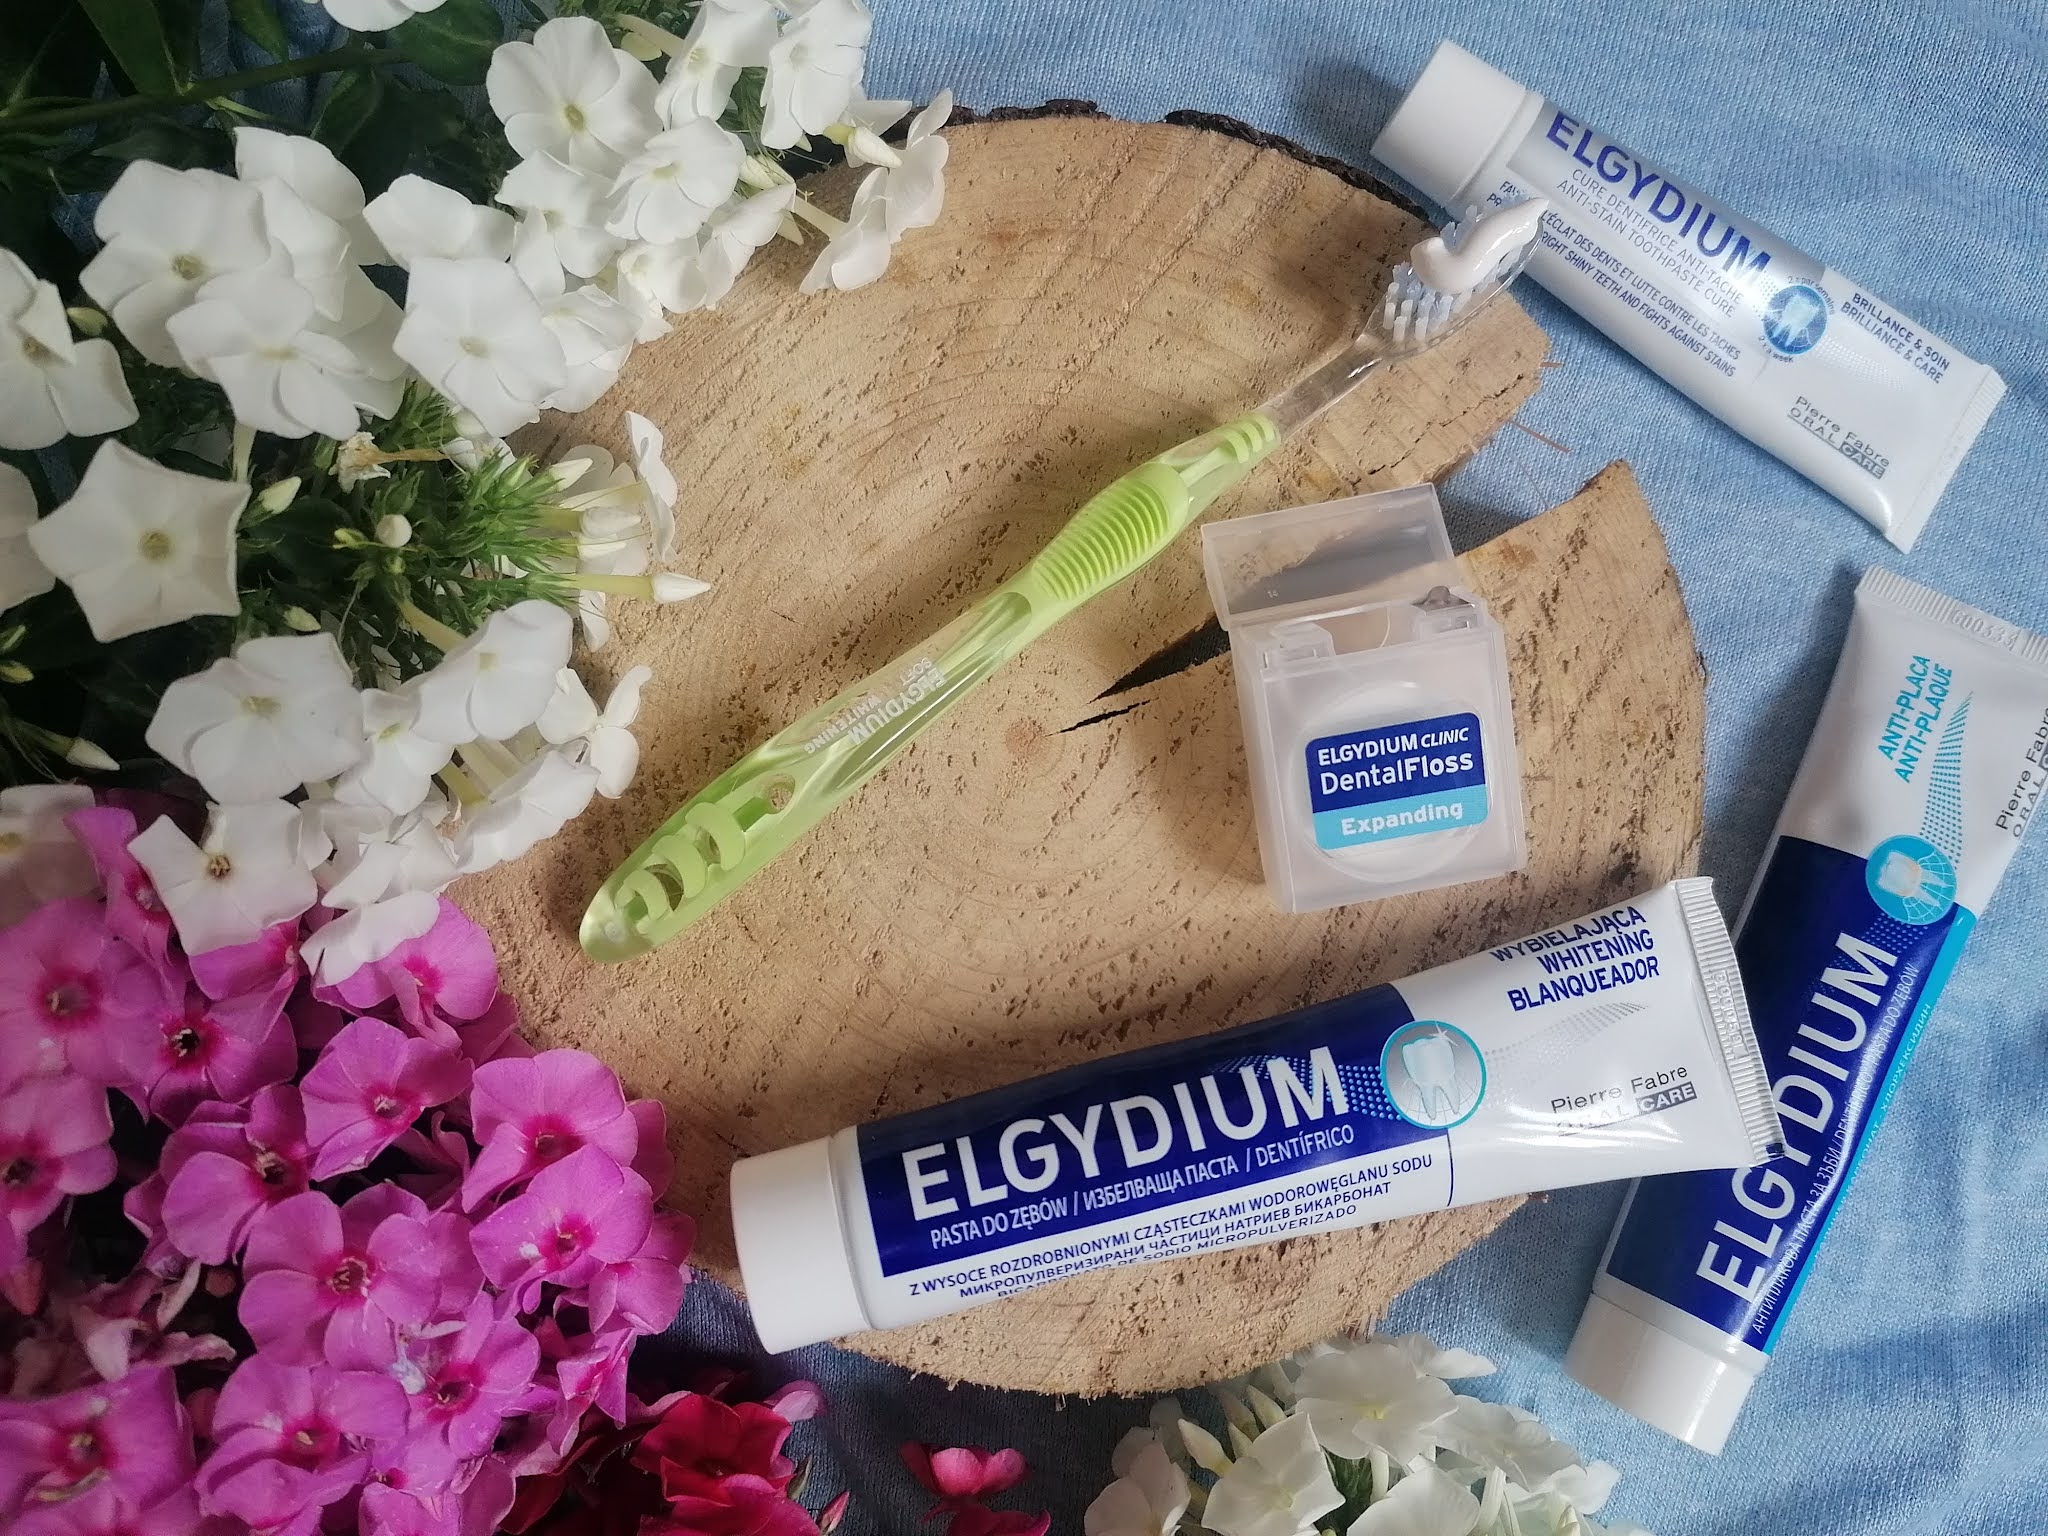 pierre fabre oral care pasty elygydium